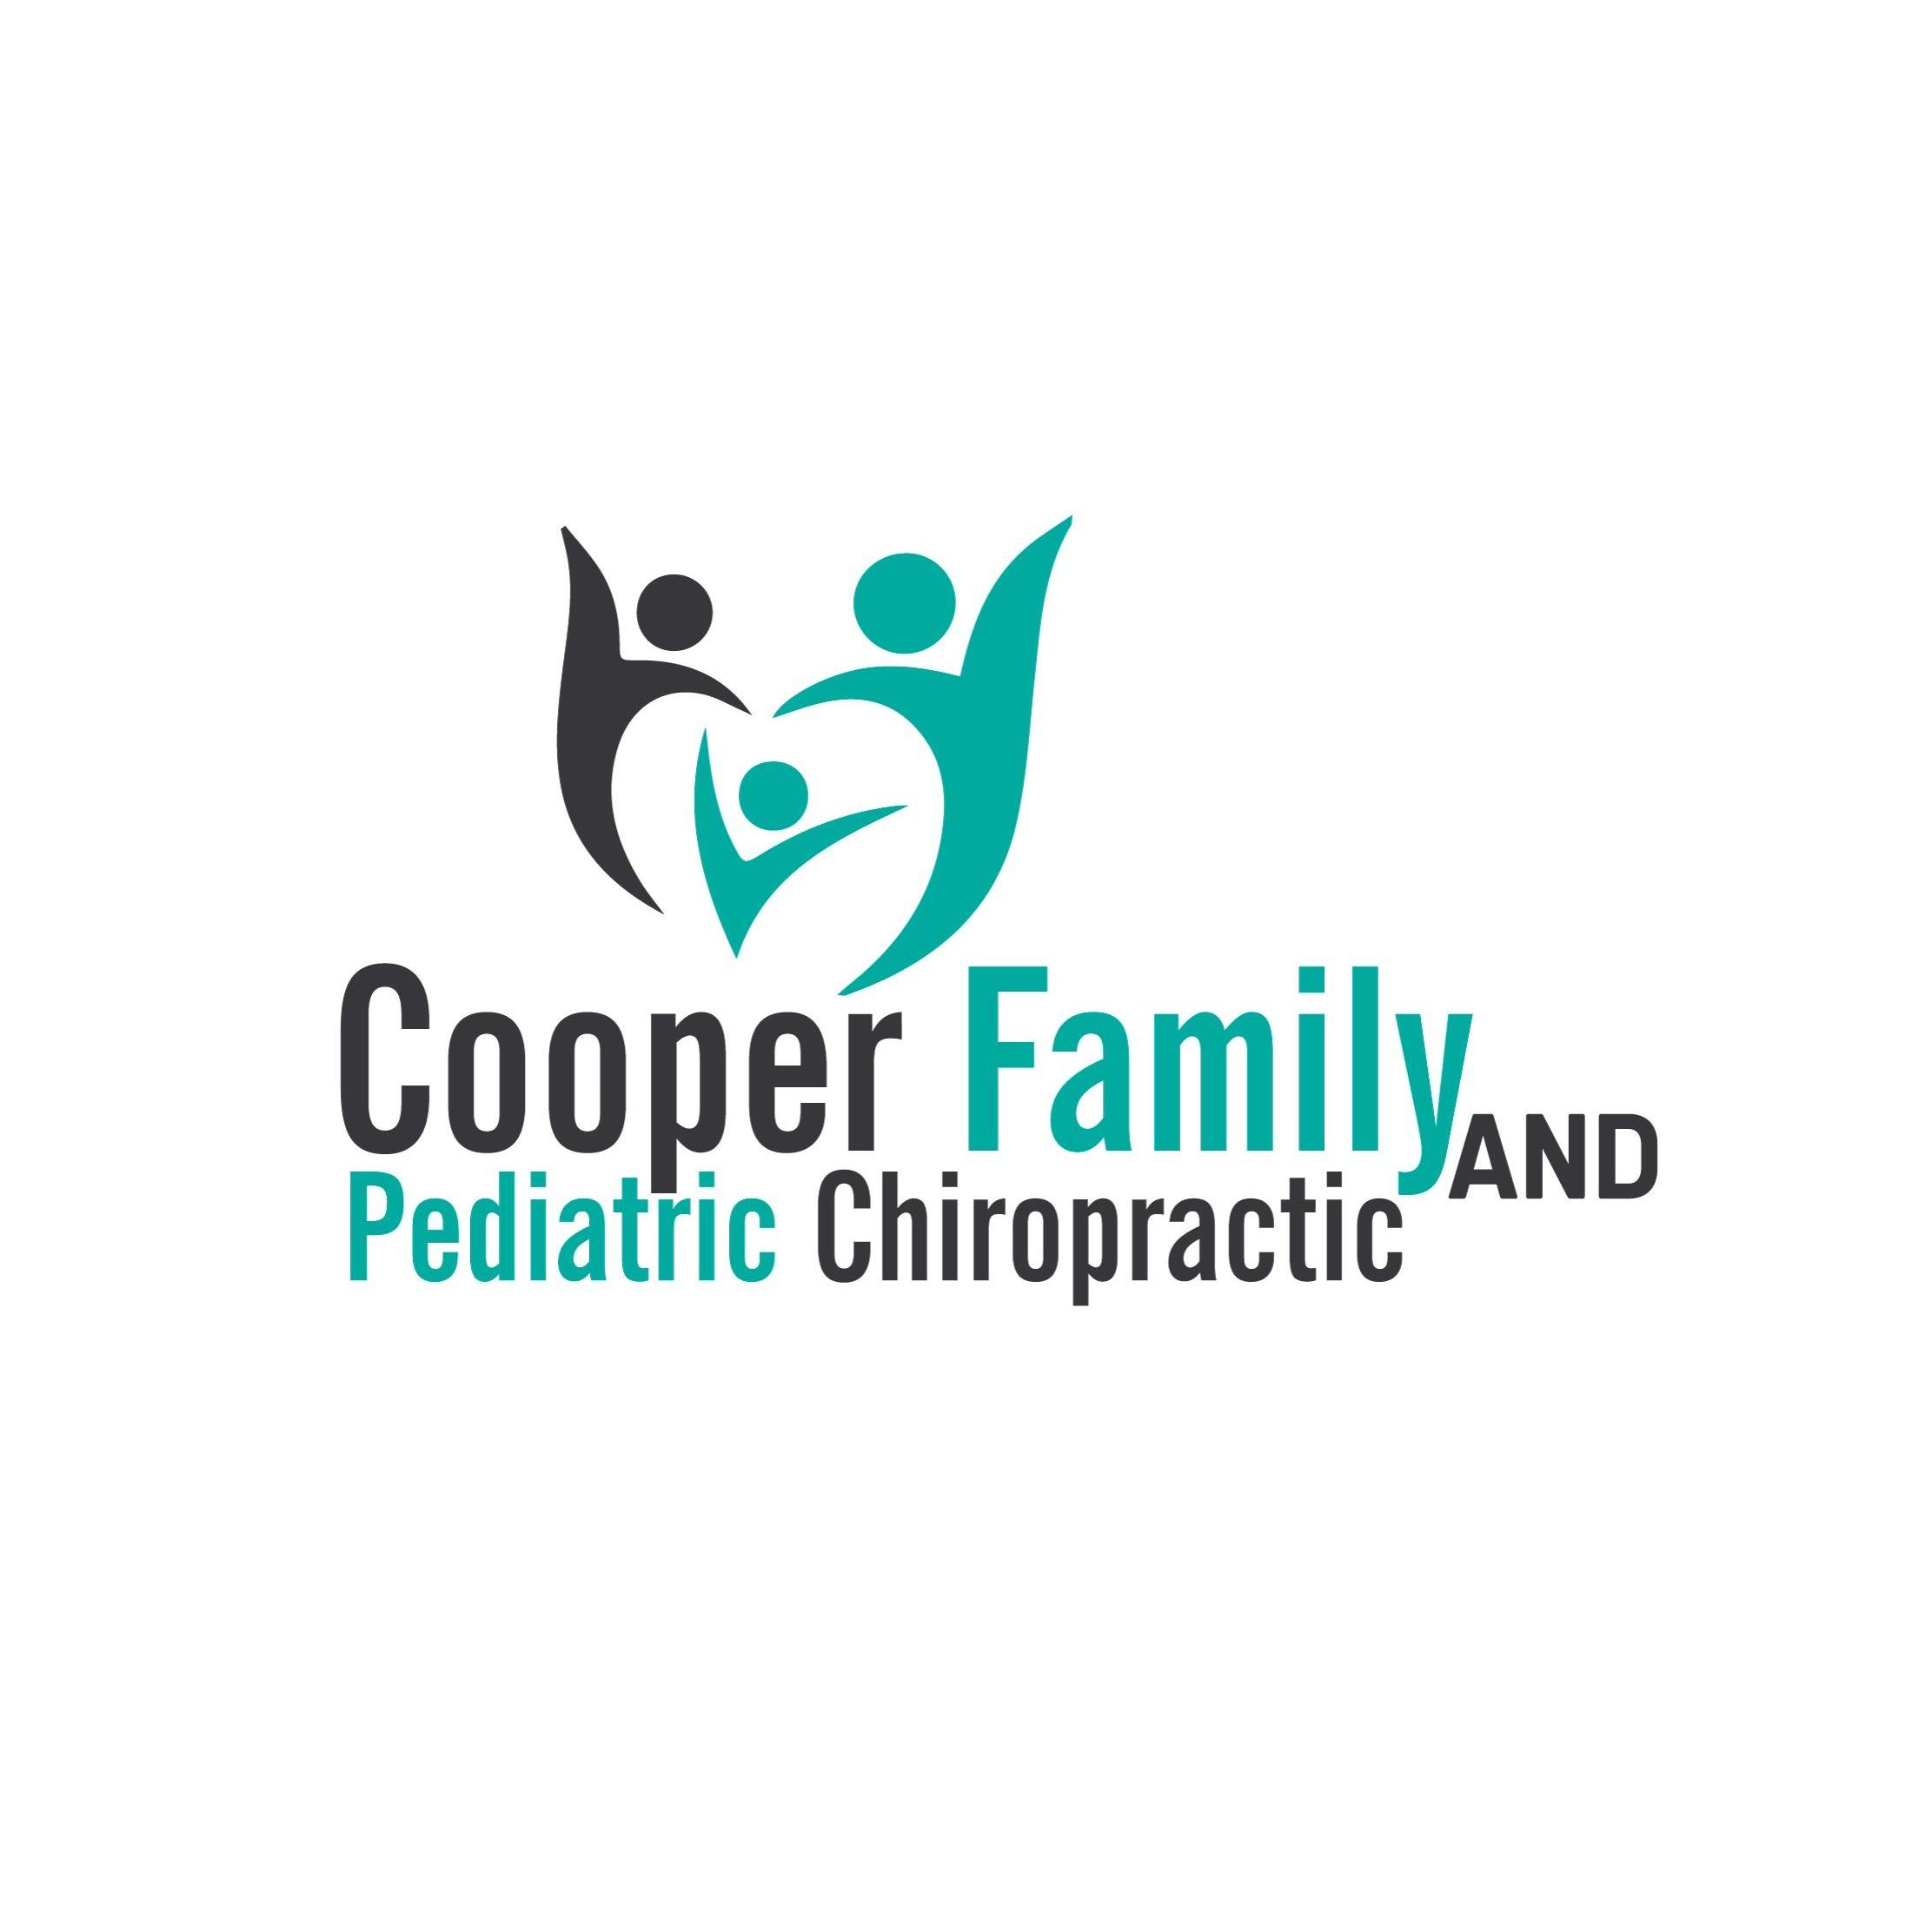 Cooper Family and Pediatric Chiropractic-Dr. Nancy Elwartowski-Cooper